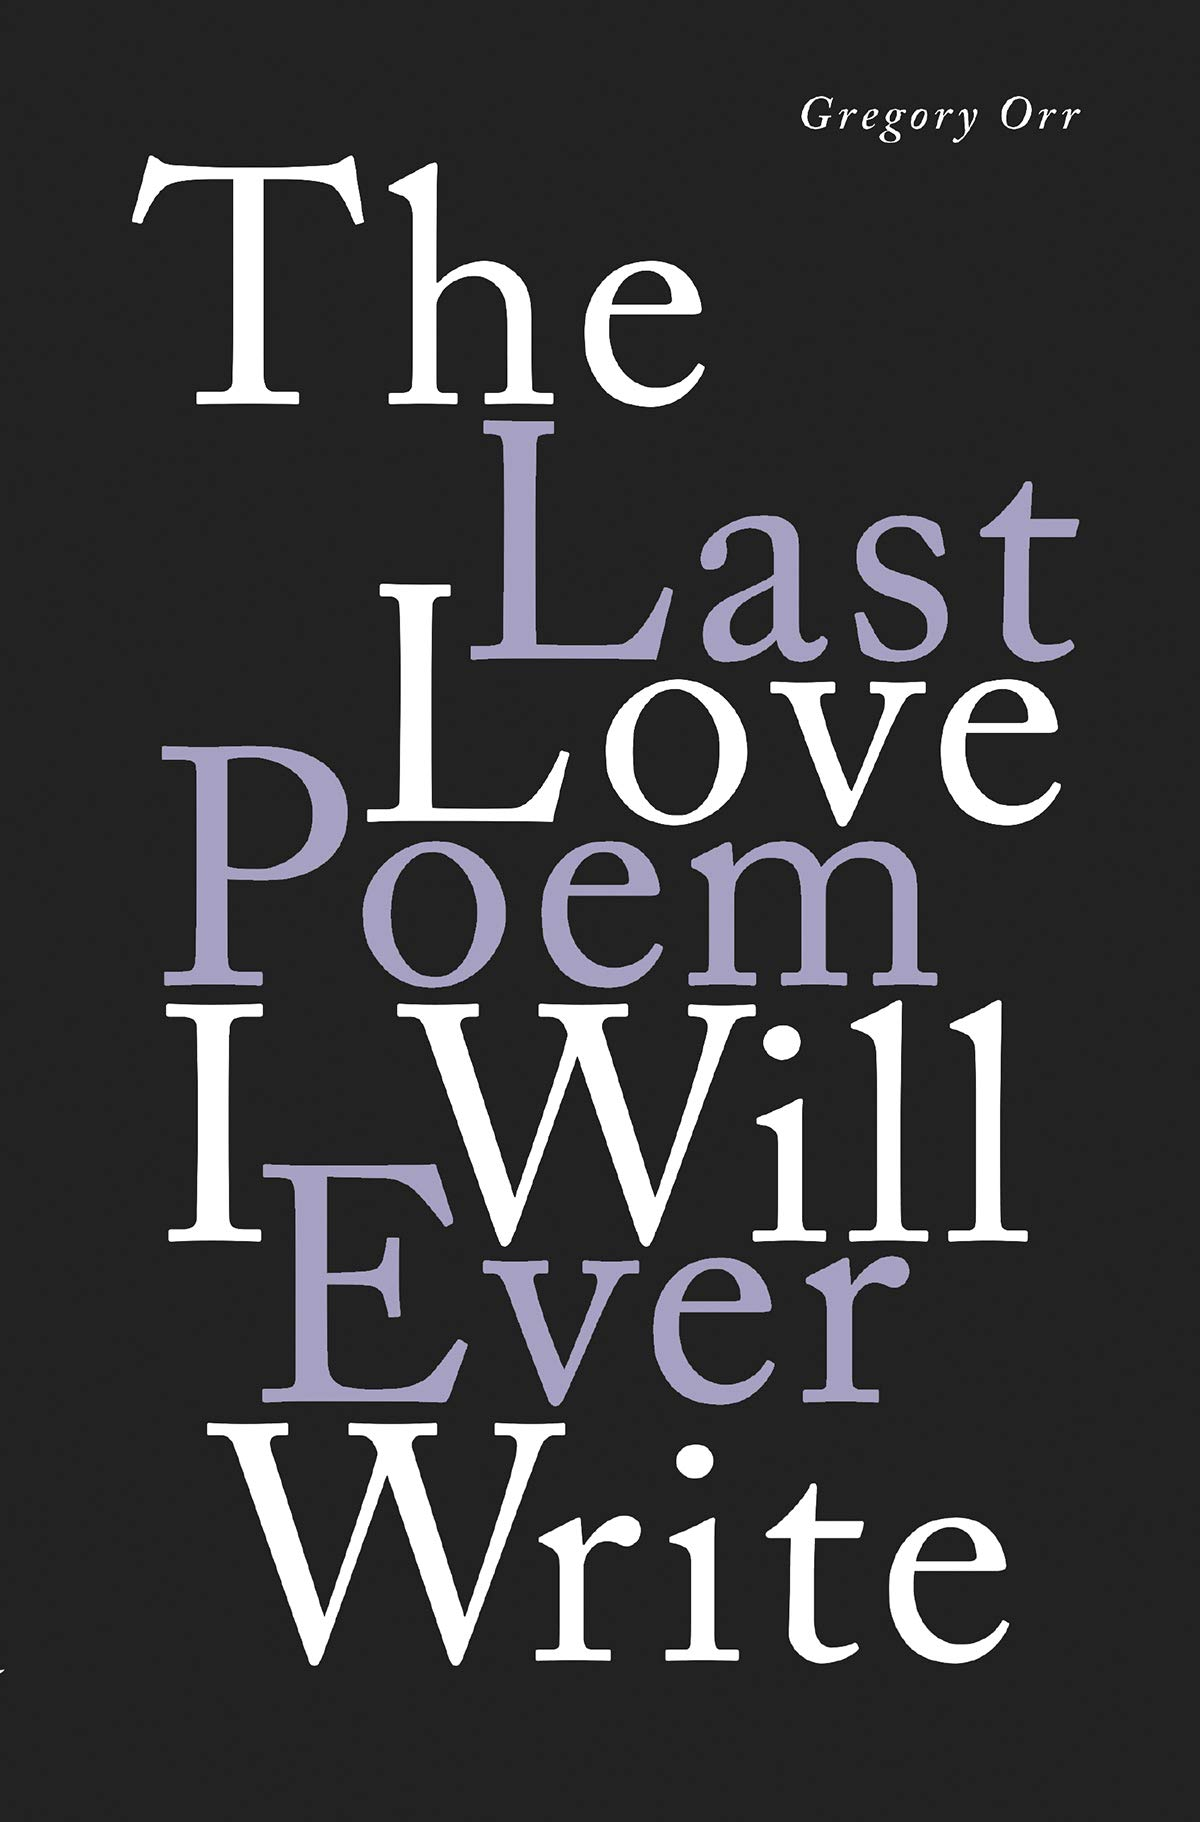 The Last Love Poem I Will Ever Write Poems Orr Gregory 9781324002352 Amazon Com Books Love poems for free by nicholas gordon. love poem i will ever write poems orr